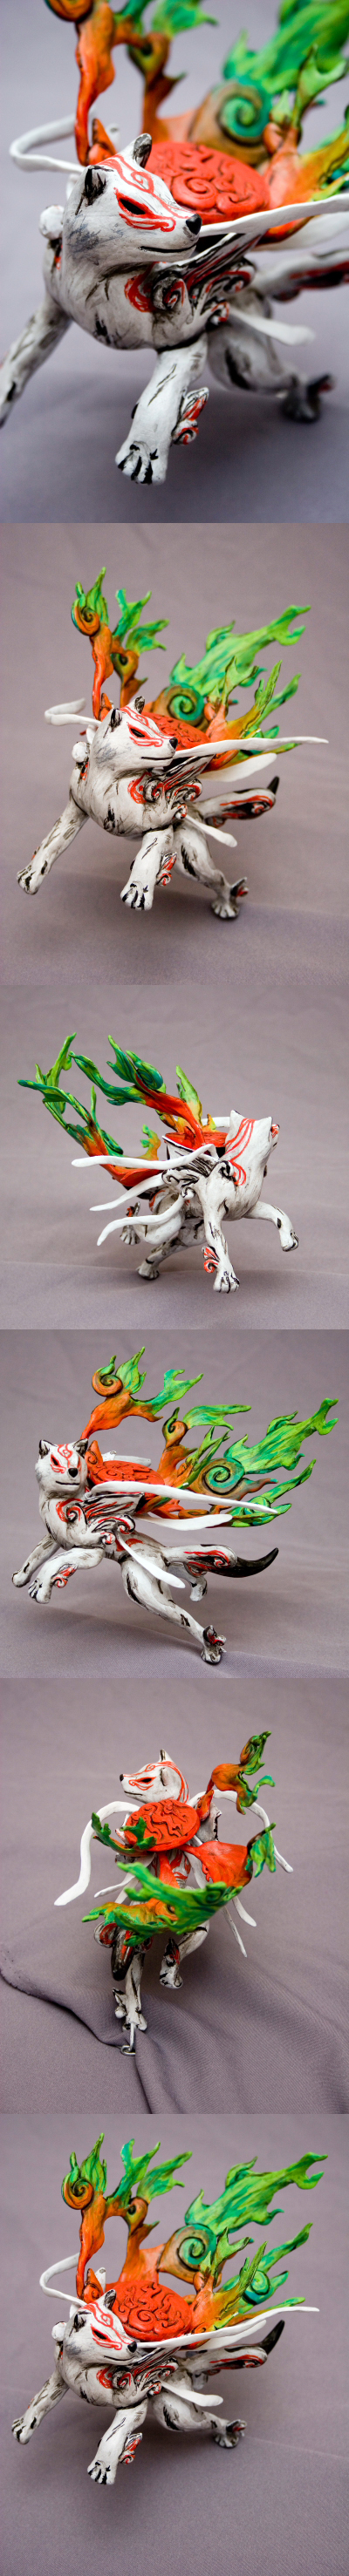 Okami Shiranui sculpture by SomaKun